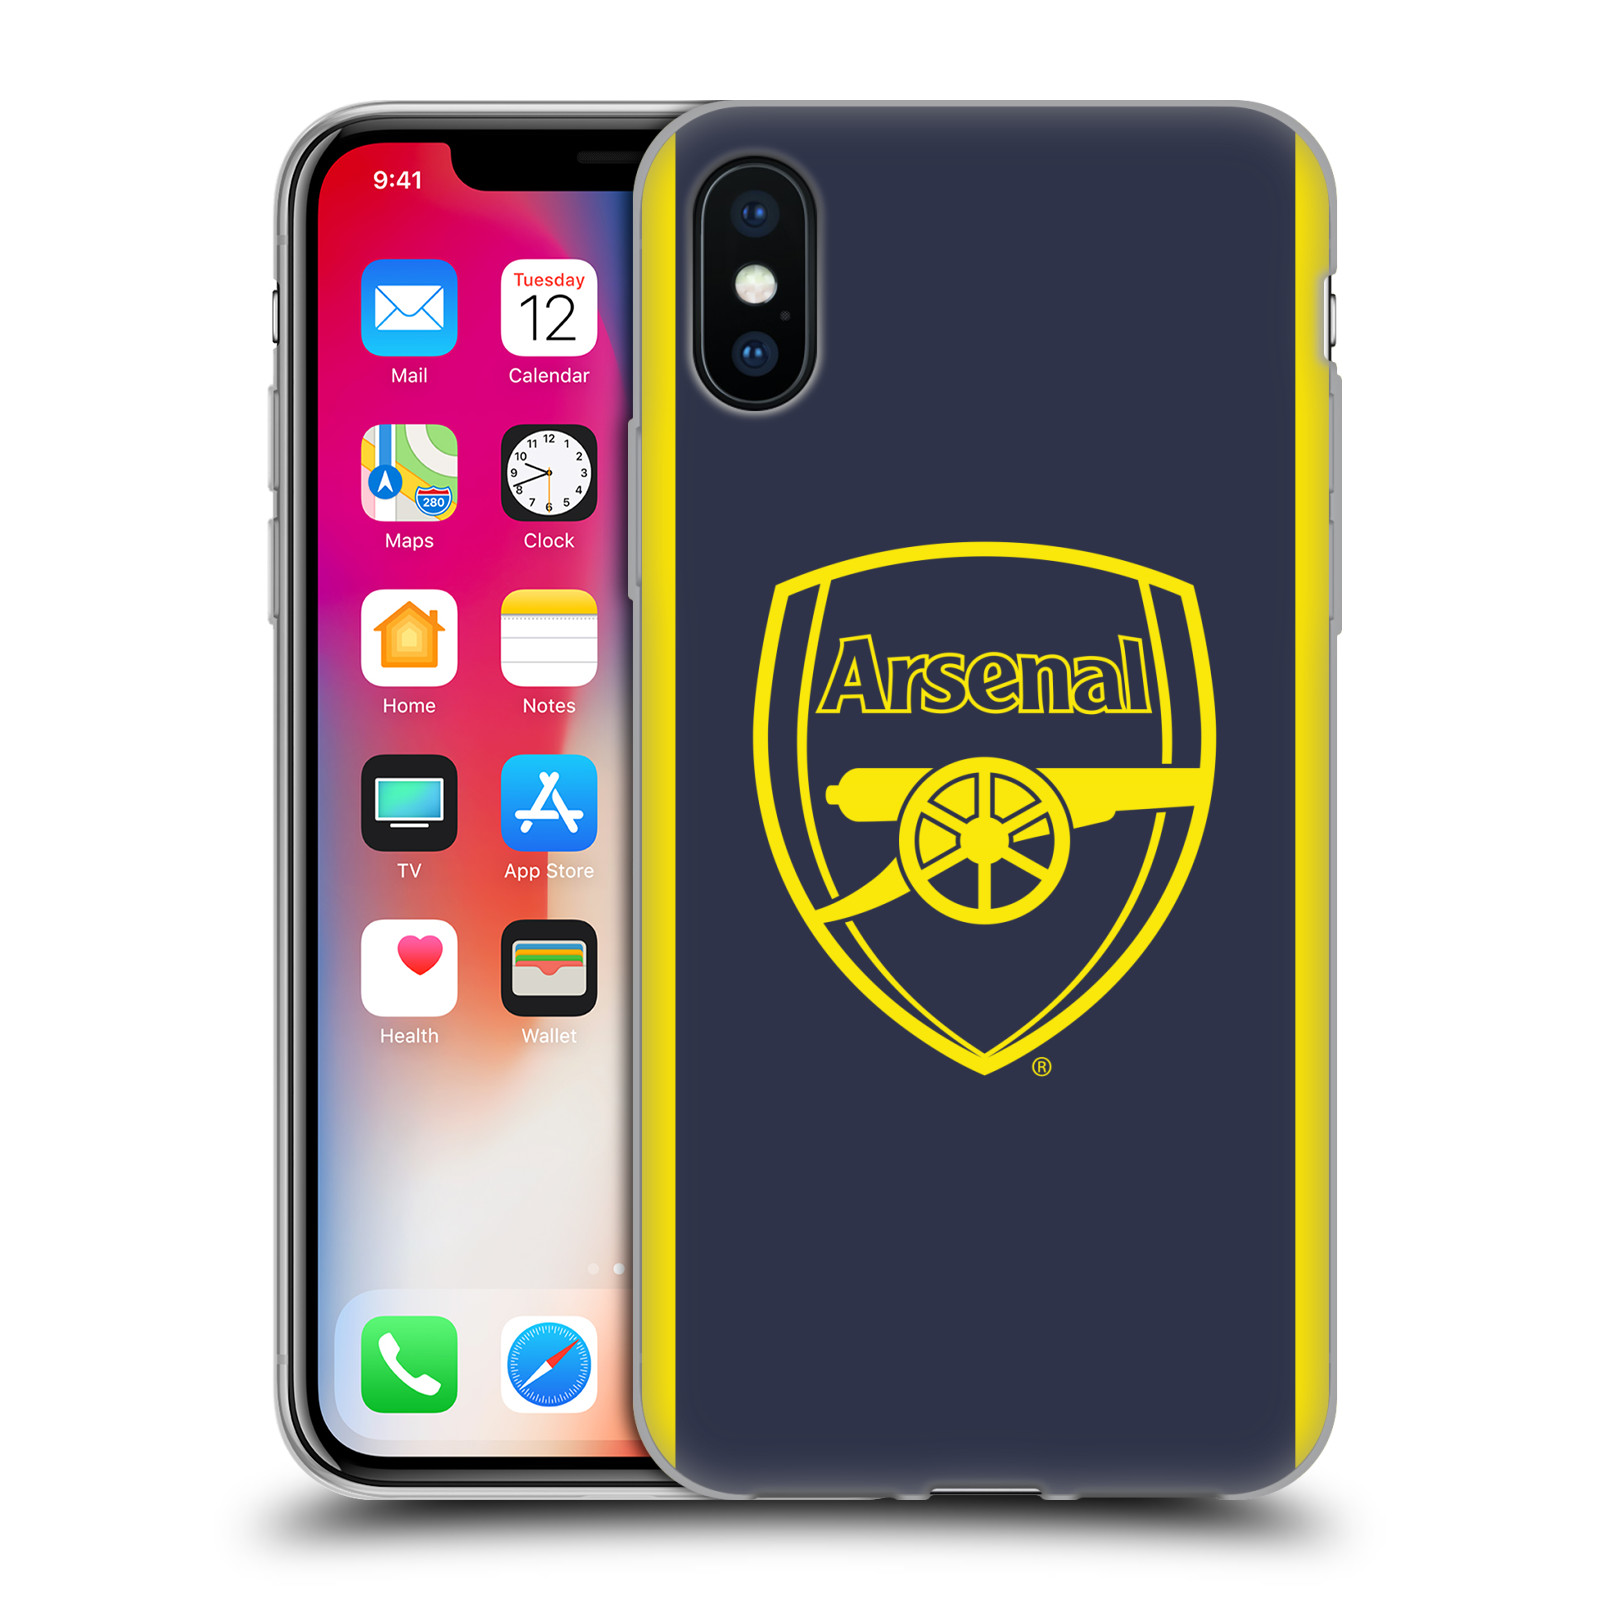 OFFICIAL-ARSENAL-FC-2016-17-CREST-KIT-SOFT-GEL-CASE-FOR-APPLE-iPHONE-PHONES